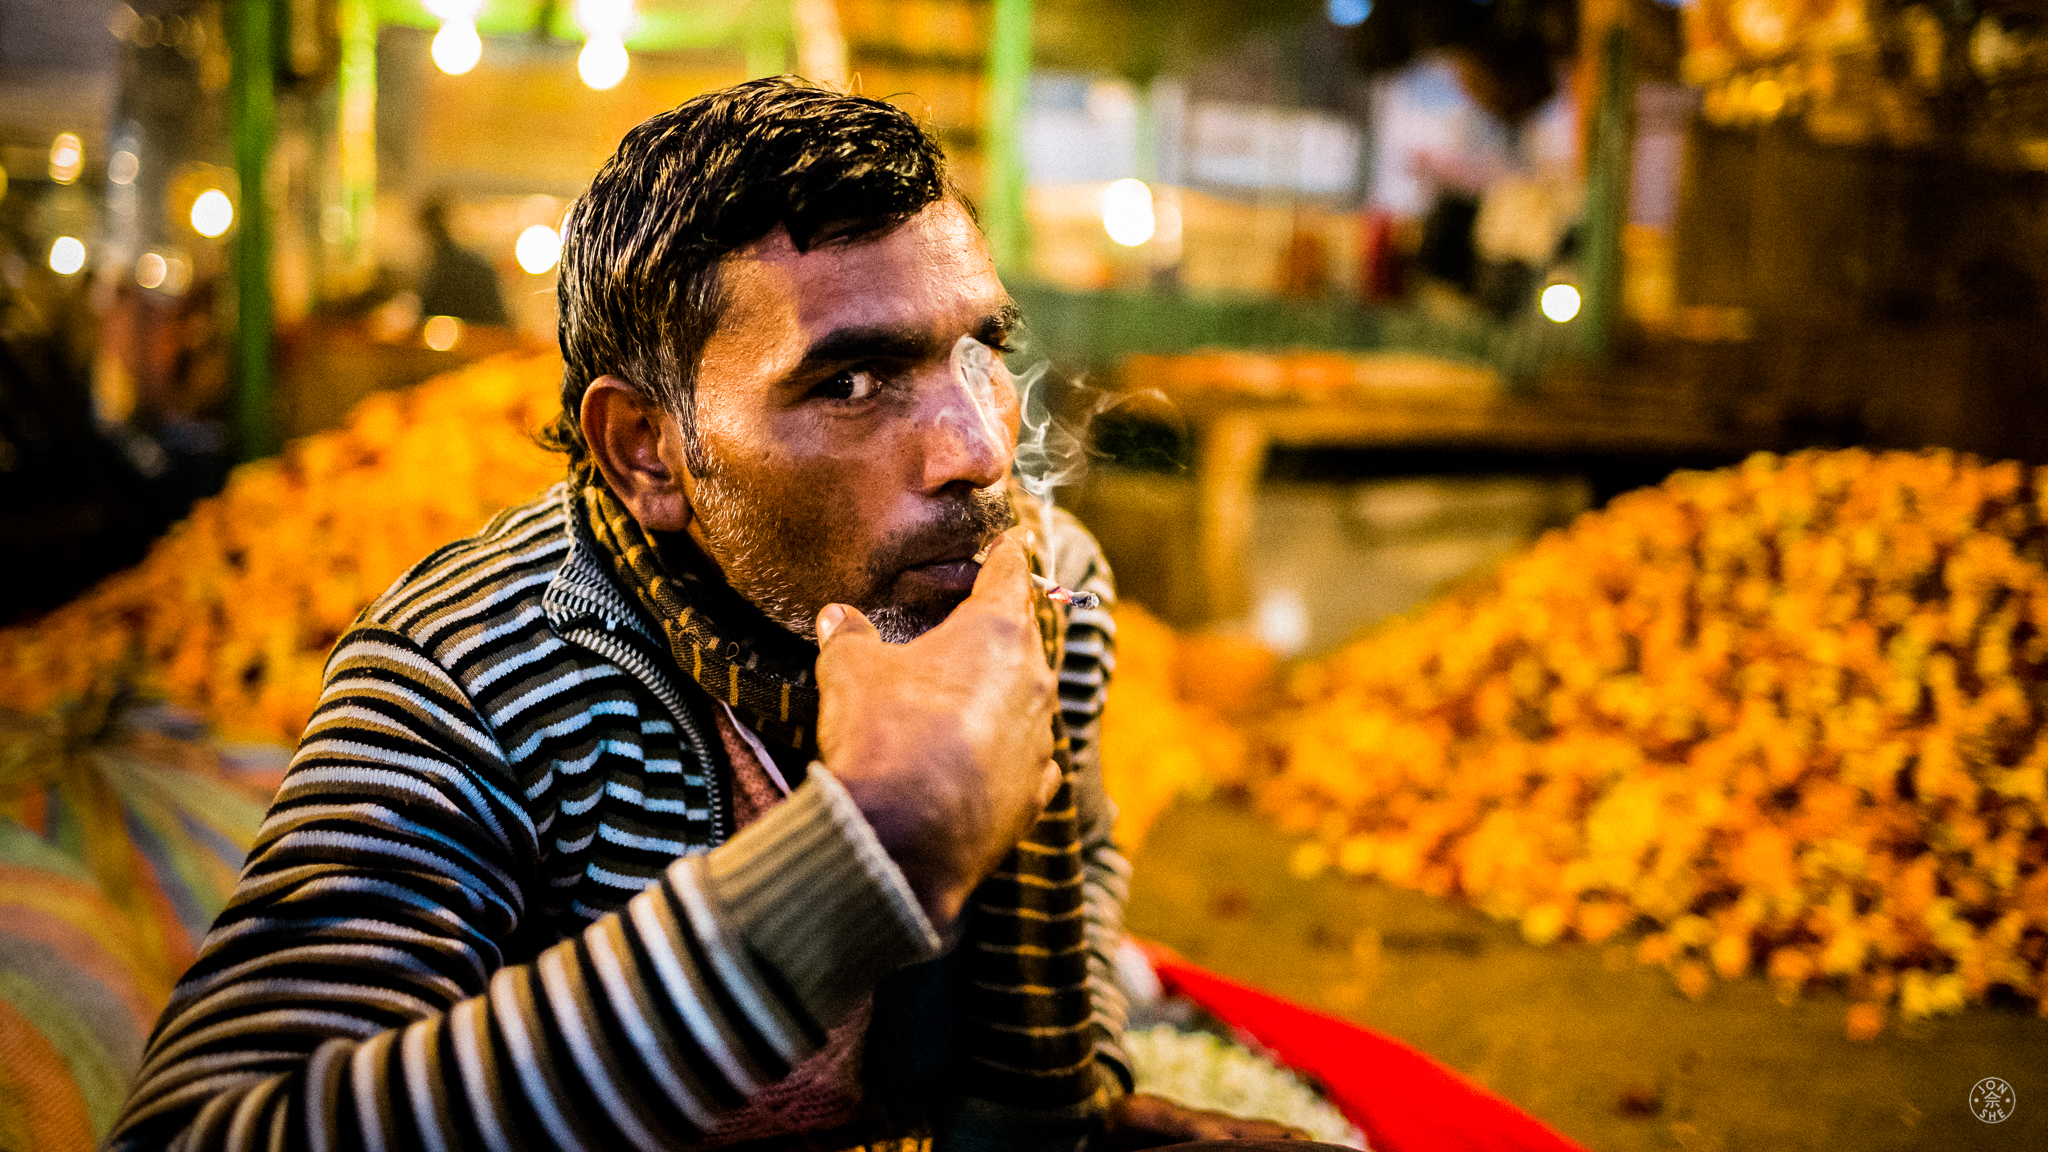 """Flower Market Smoke Break"".  Delhi, India. January 2017. © Jon She. Leica M10, Leica Summilux 28mm f/1.4 ASPH. Another photo from my visit to one of the flower markets in Delhi. This one is of a laborer taking a cigarette break between hauling massive bales of flowers used for Hindu temple prayers."